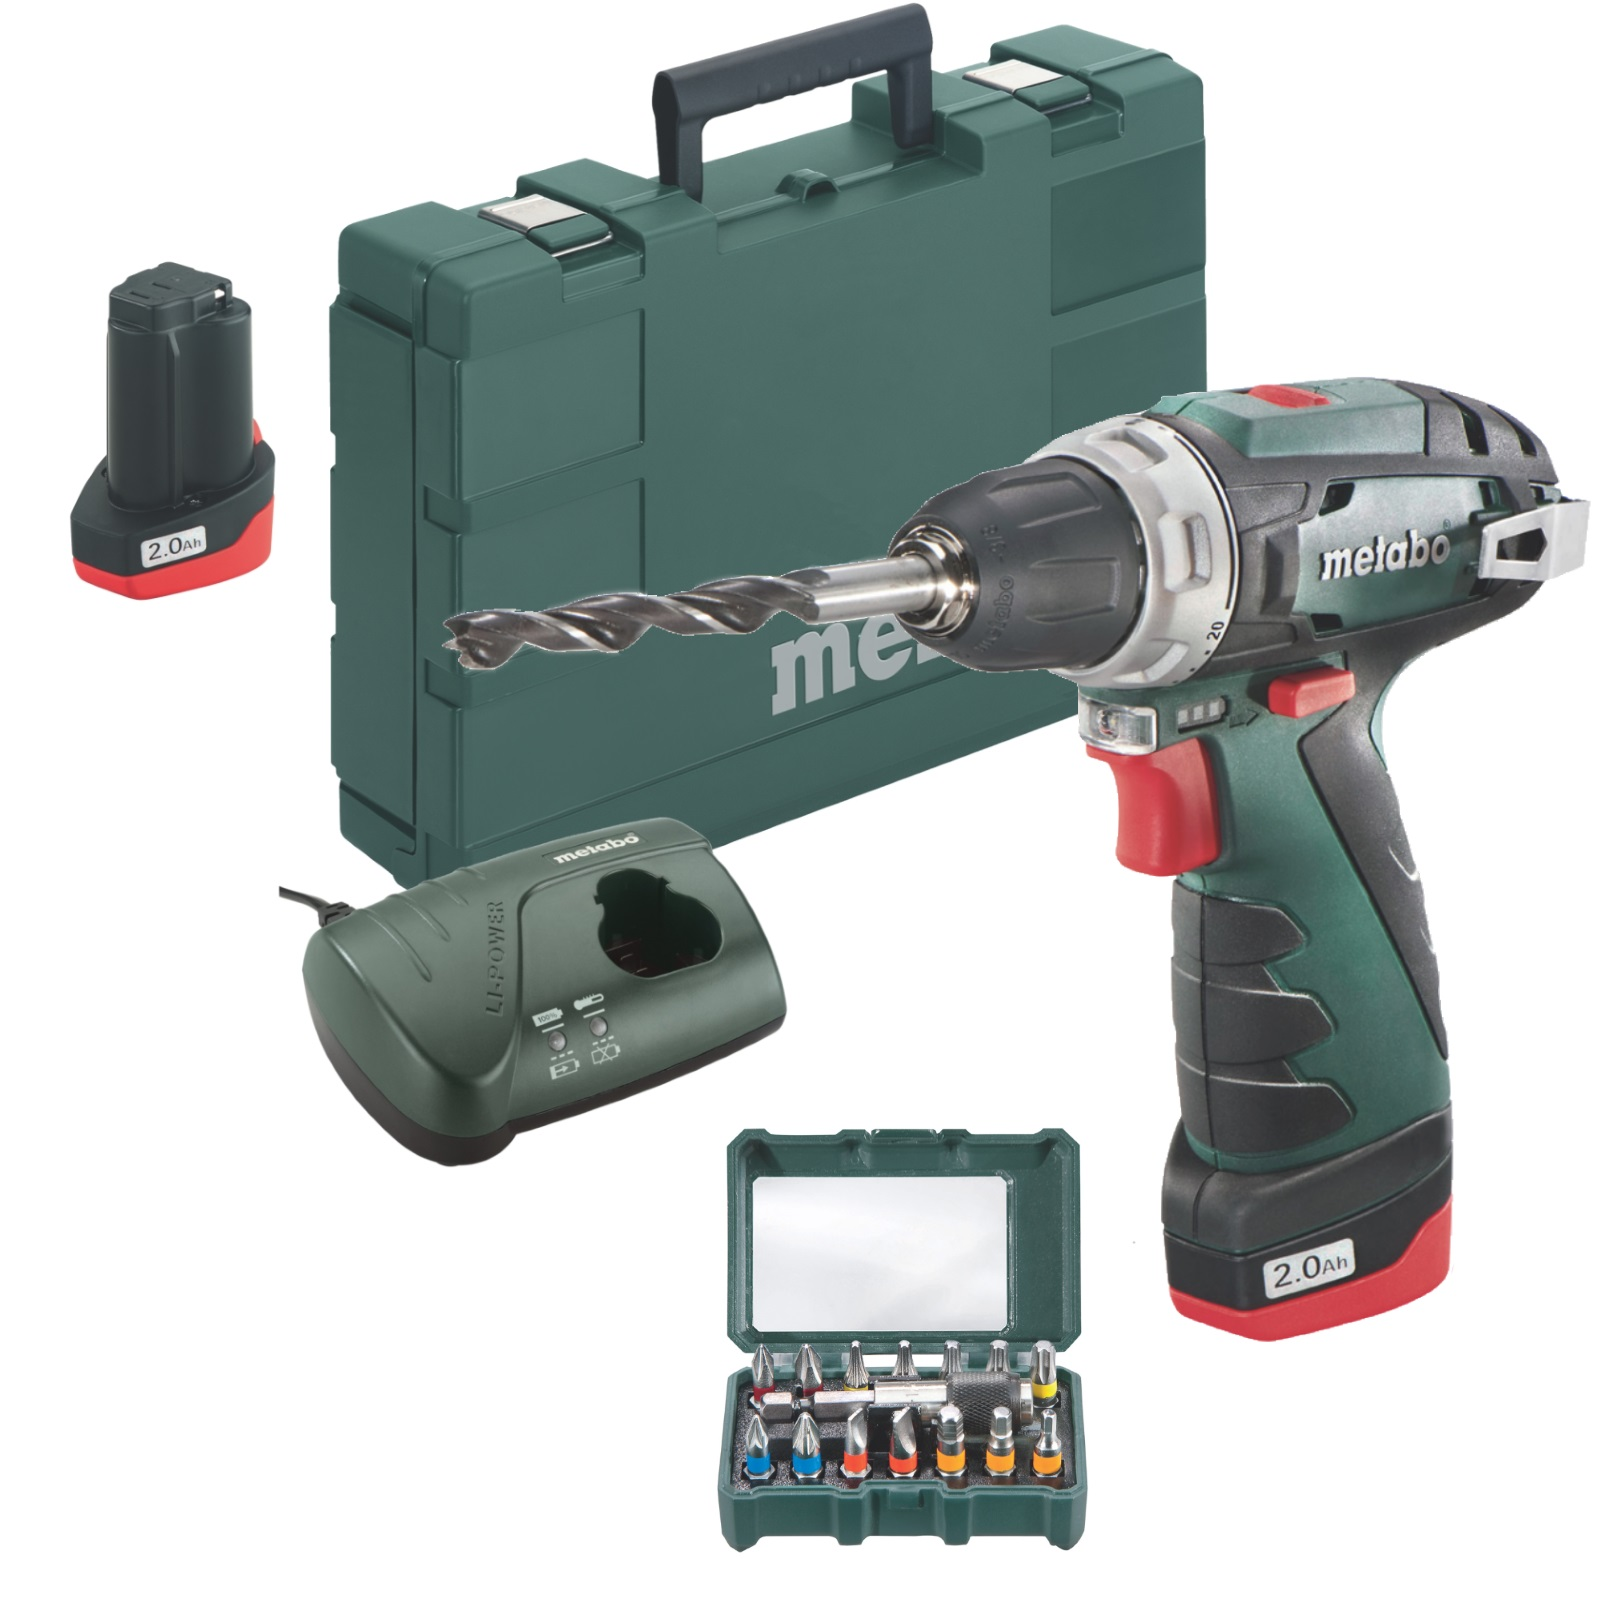 metabo akku bohrschrauber powermaxx bs basic set bitbox akku 10 8 v ladeger t ebay. Black Bedroom Furniture Sets. Home Design Ideas